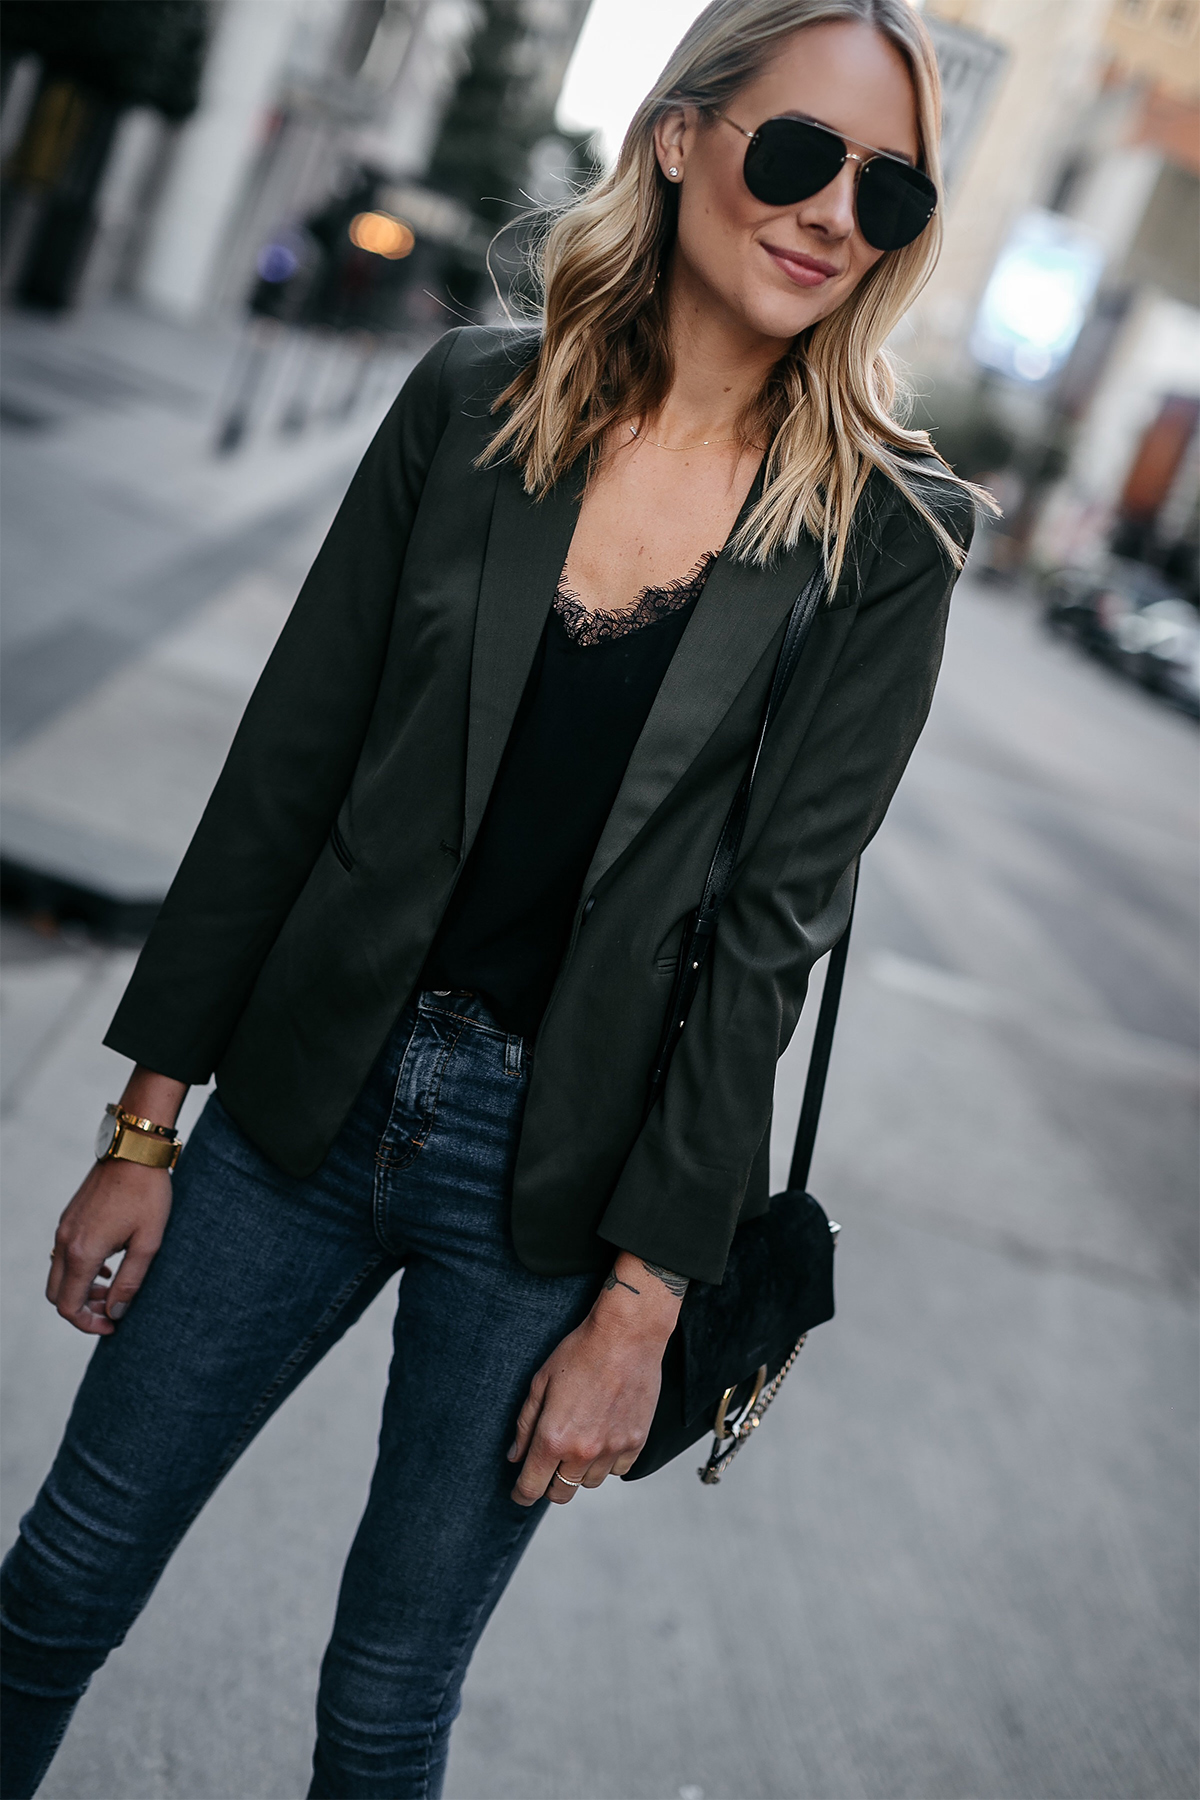 Blonde Woman Wearing Everlane Olive Green Blazer Anine Bing Black Lace Cami Topshop Denim Skinny Jeans Chloe Faye Black Handbag Fashion Jackson Dallas Blogger Fashion Blogger Street Style